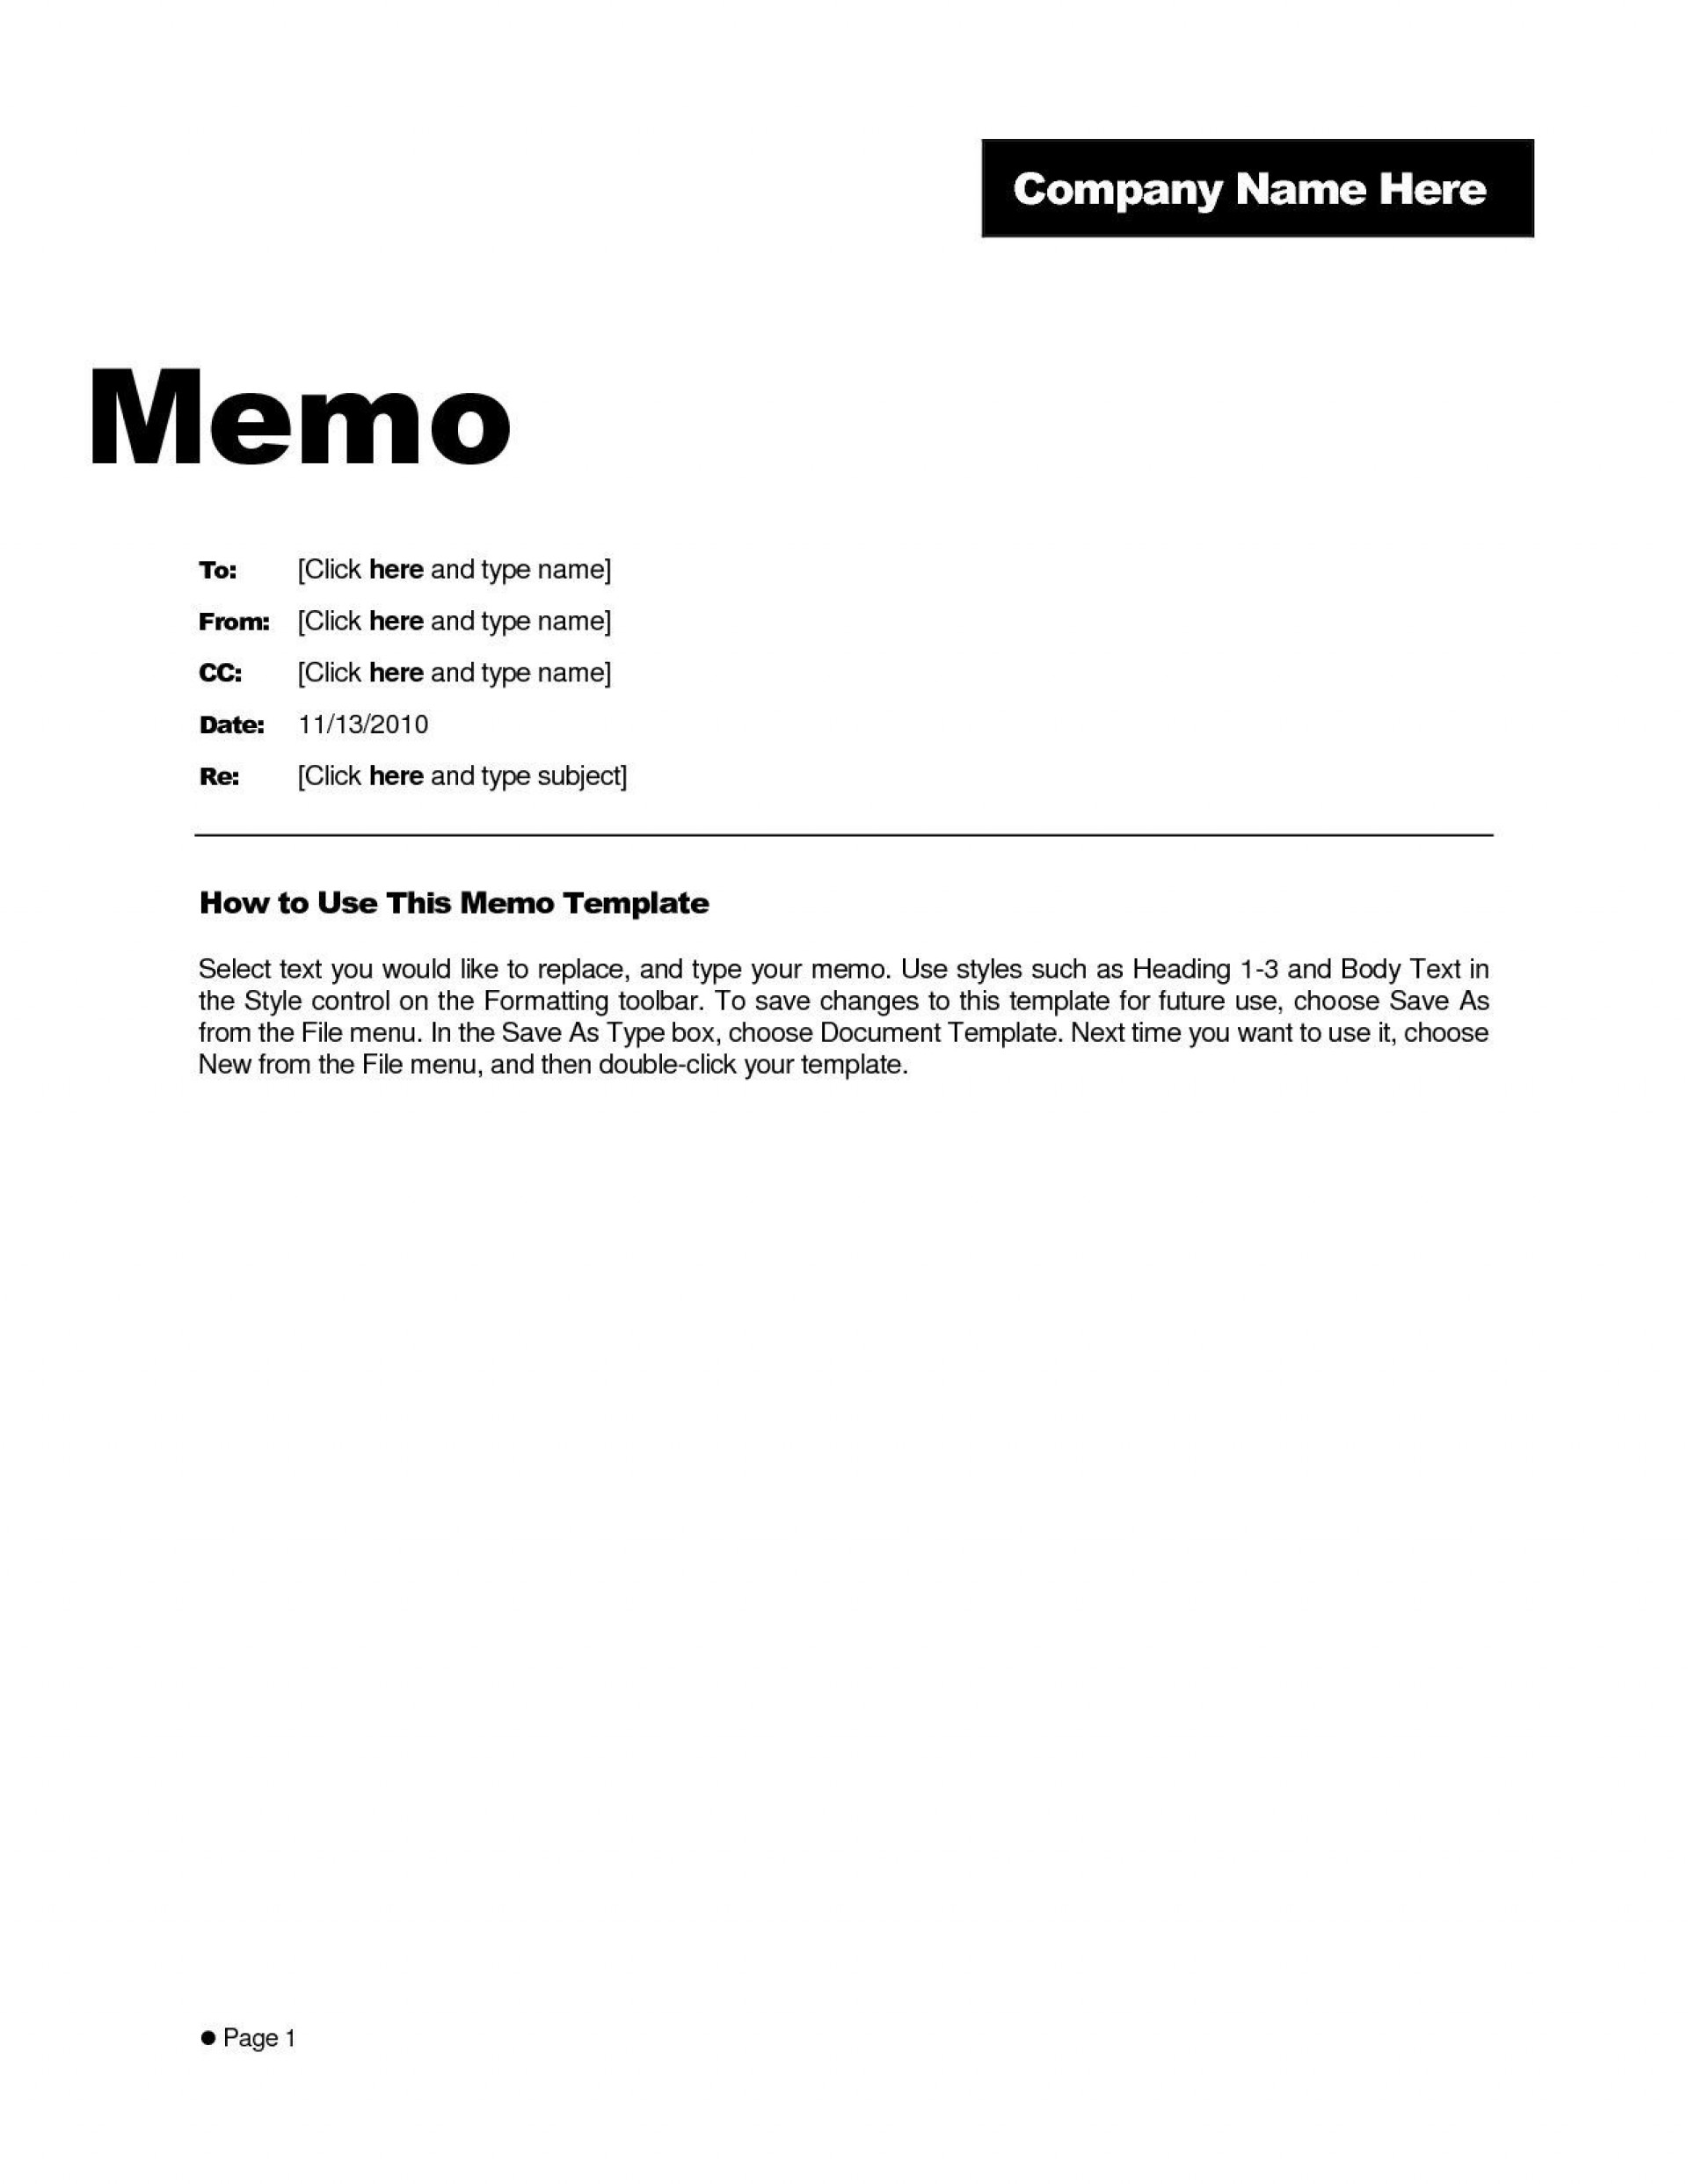 000 Archaicawful M Word Memo Template Image  Templates Microsoft Free Download Busines1920